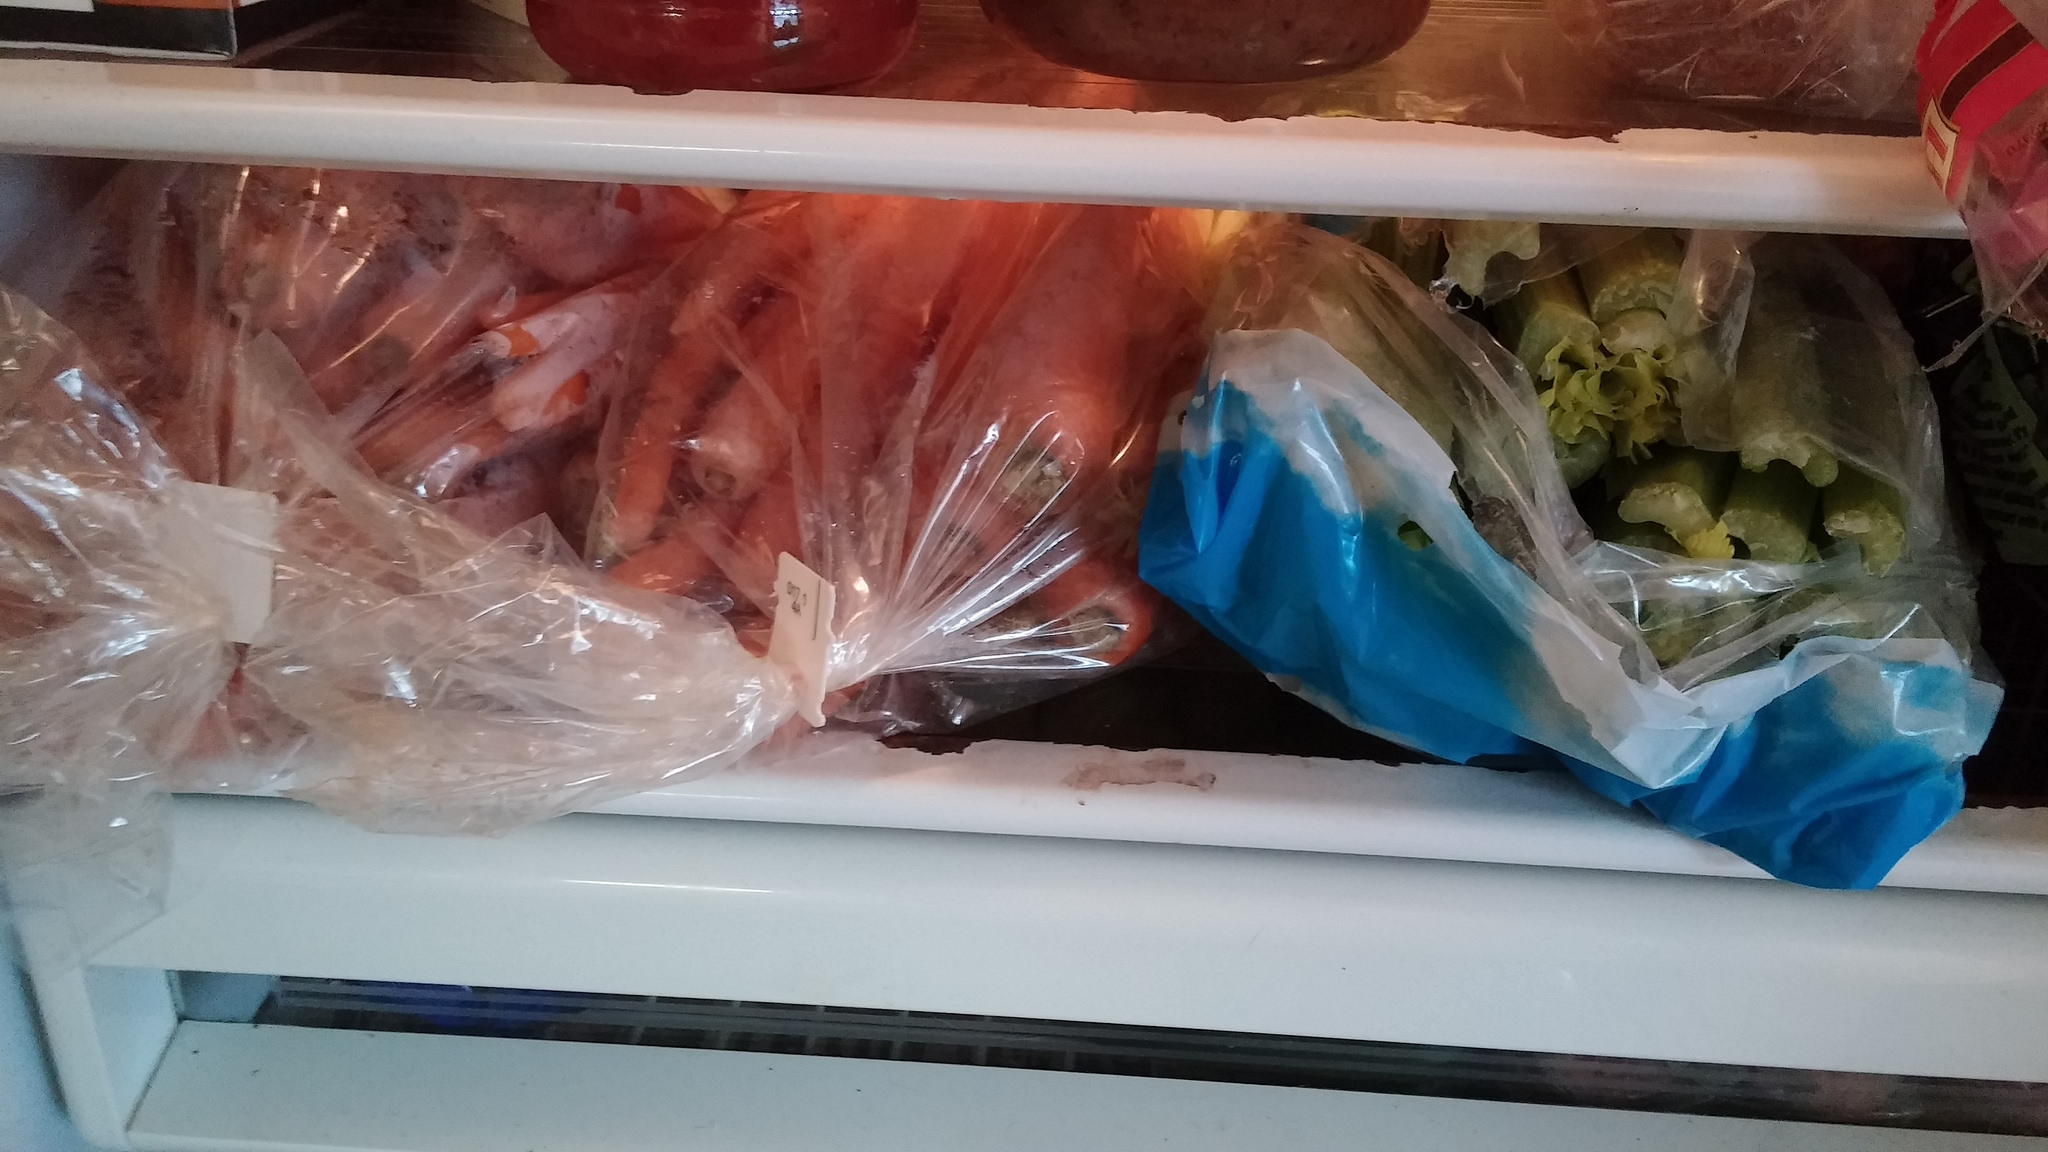 It's not easy to get 10 pounds of carrots and three celery hearts into the fridge, but I did it.